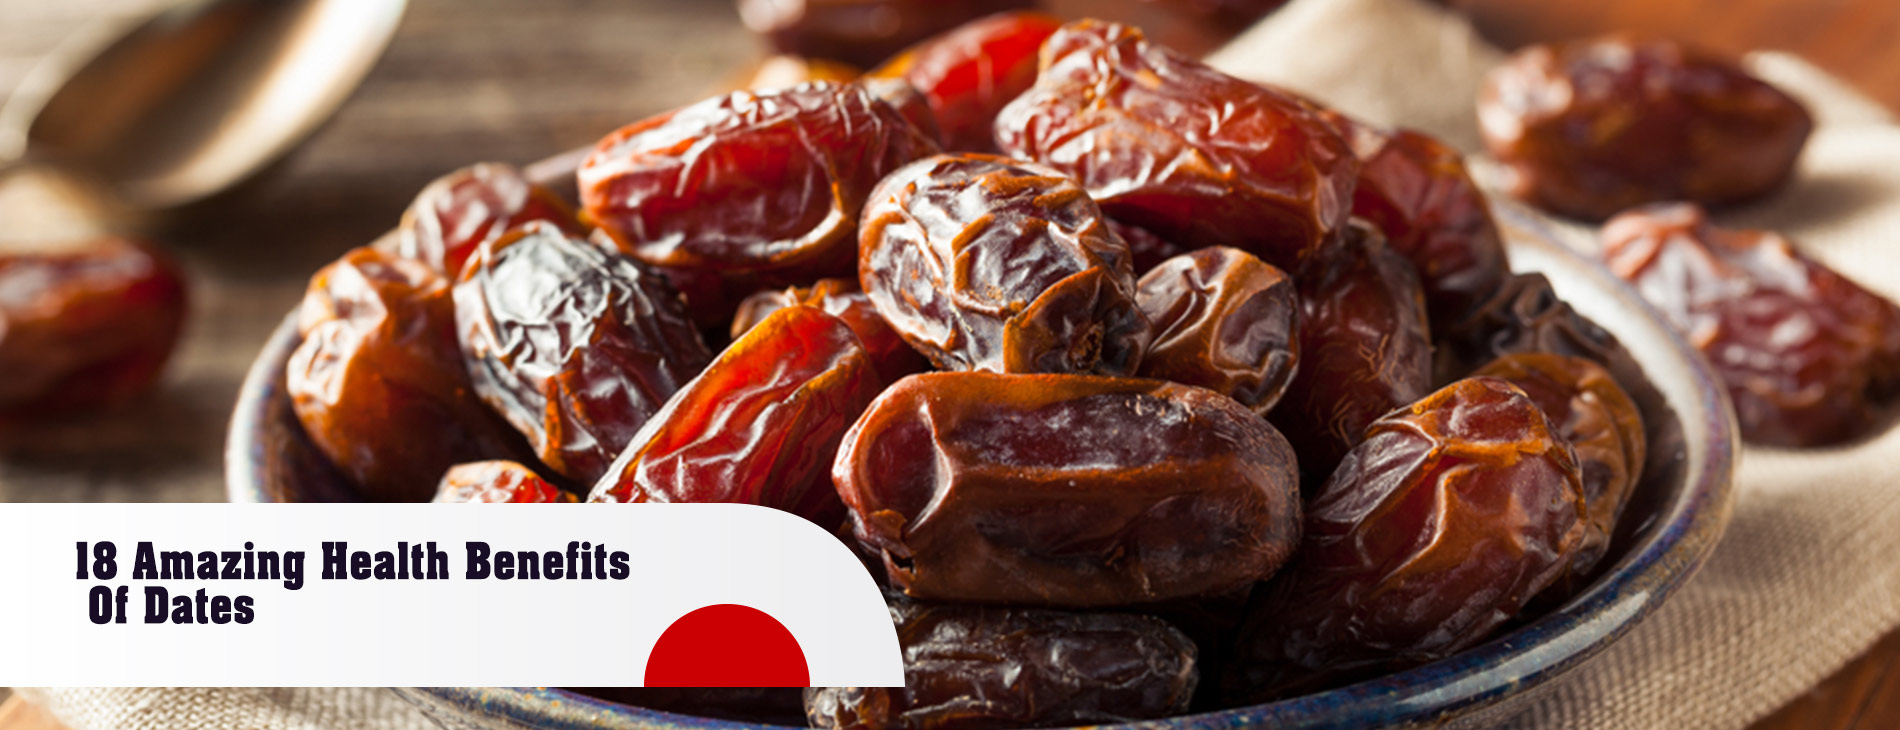 18-Amazing-Health-Benefits-Of-Dates-(Khajoor)-For-Skin,-Hair,-And-Health